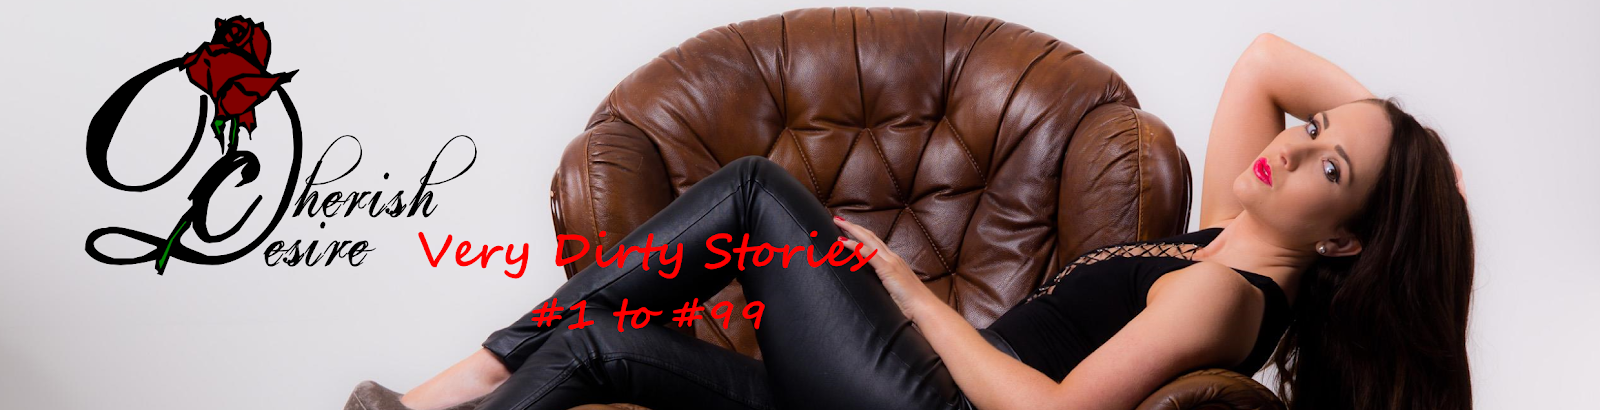 Very Dirty Stories #1 to #99, Max D, erotica